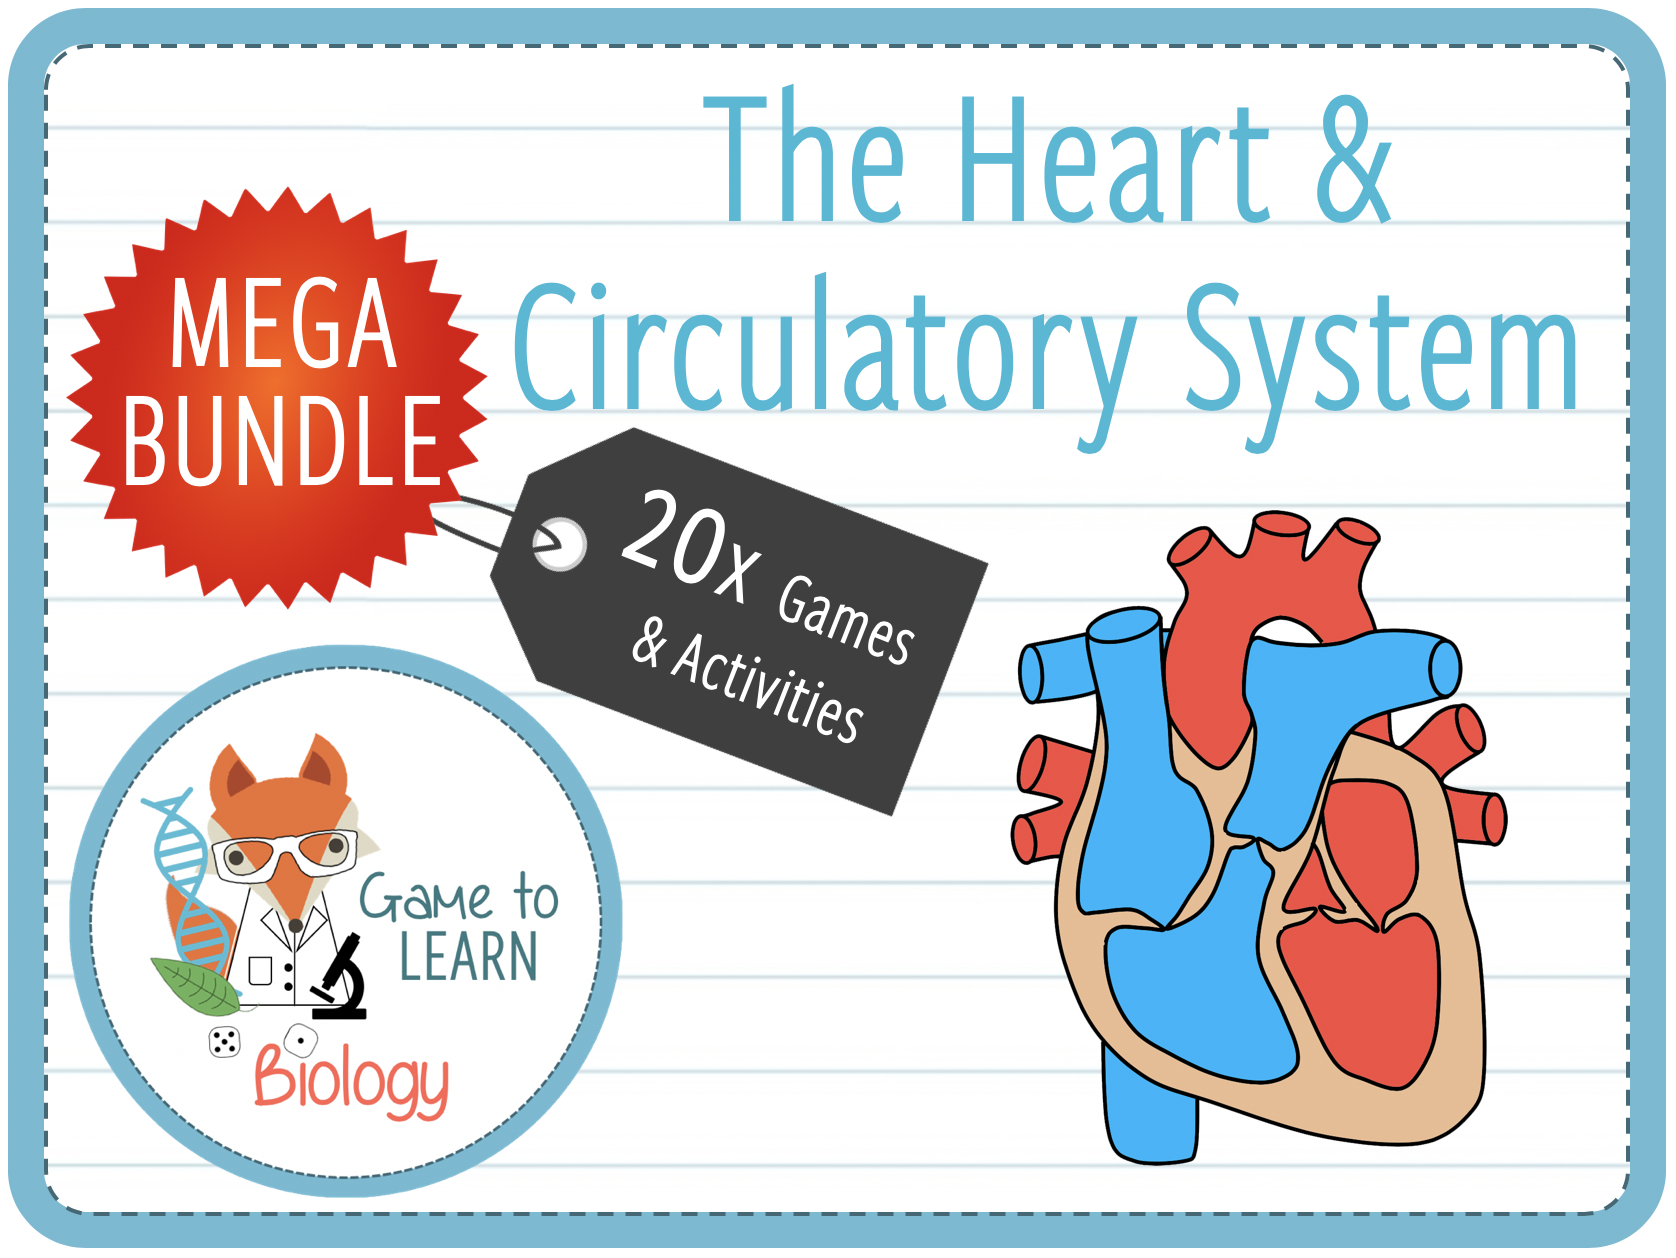 Heart, Blood and Circulatory System - 20x Games and Activities